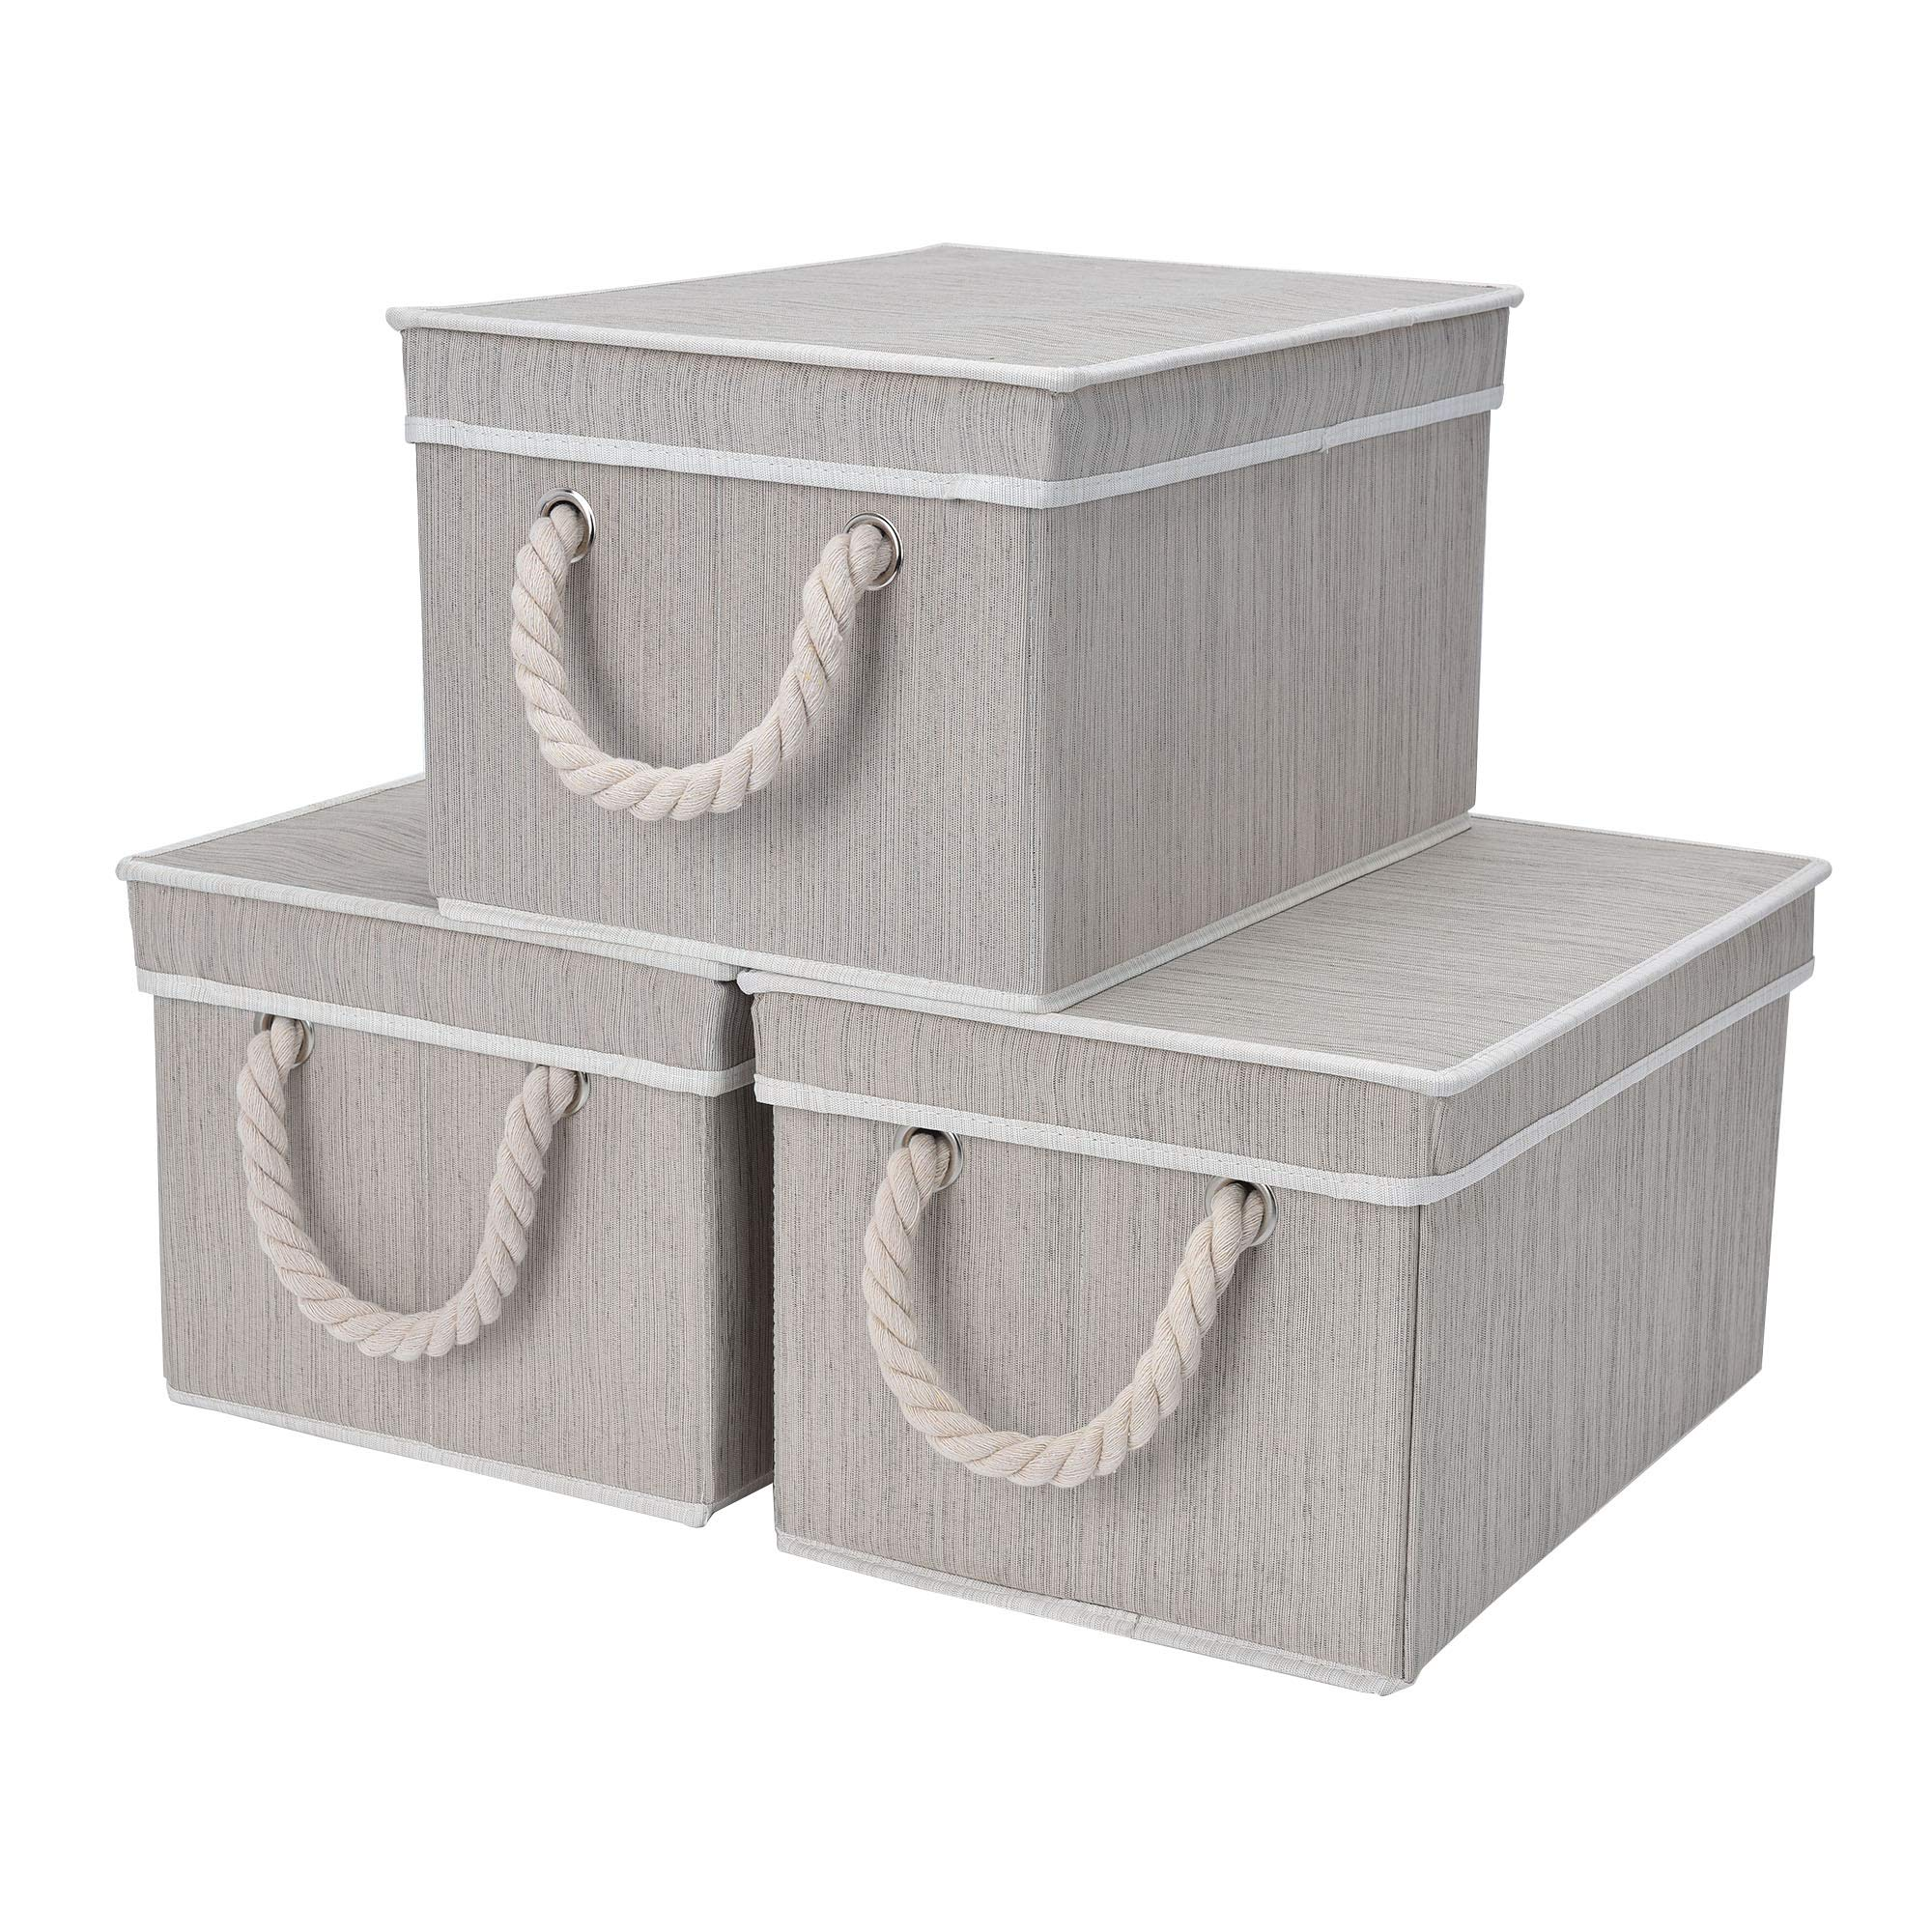 StorageWorks Decorative Storage Bins for Shelves, Storage Baskets with Lids and Cotton Rope Handles, Mixing of Gray, Brown & Beige, Large, 3-Pack by StorageWorks